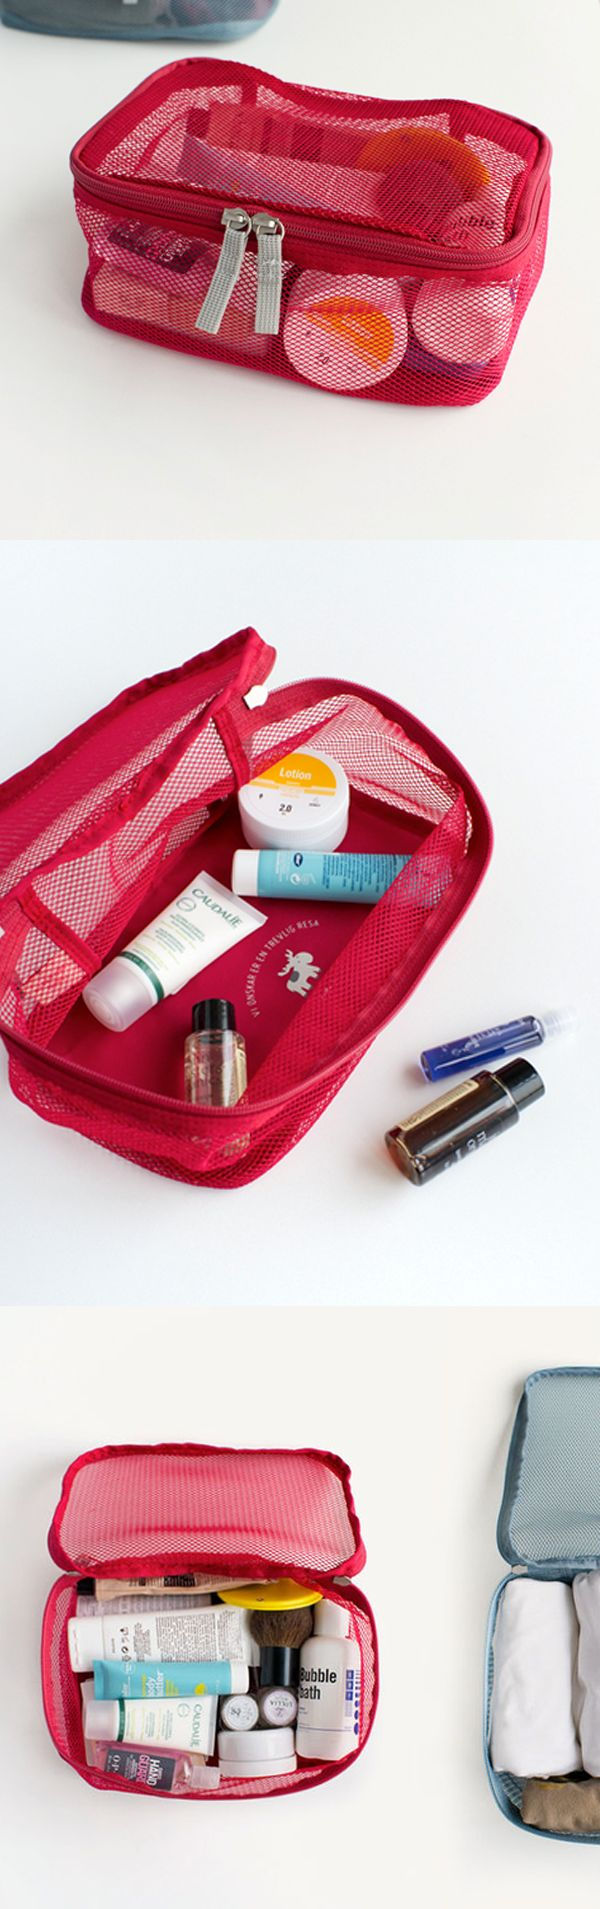 The Small Luggage Mesh Bag is a wonderful pouch to carry small travel items! The extended zipper allows you to easily put and take out items from the bag. It's also great for carrying your everyday items!